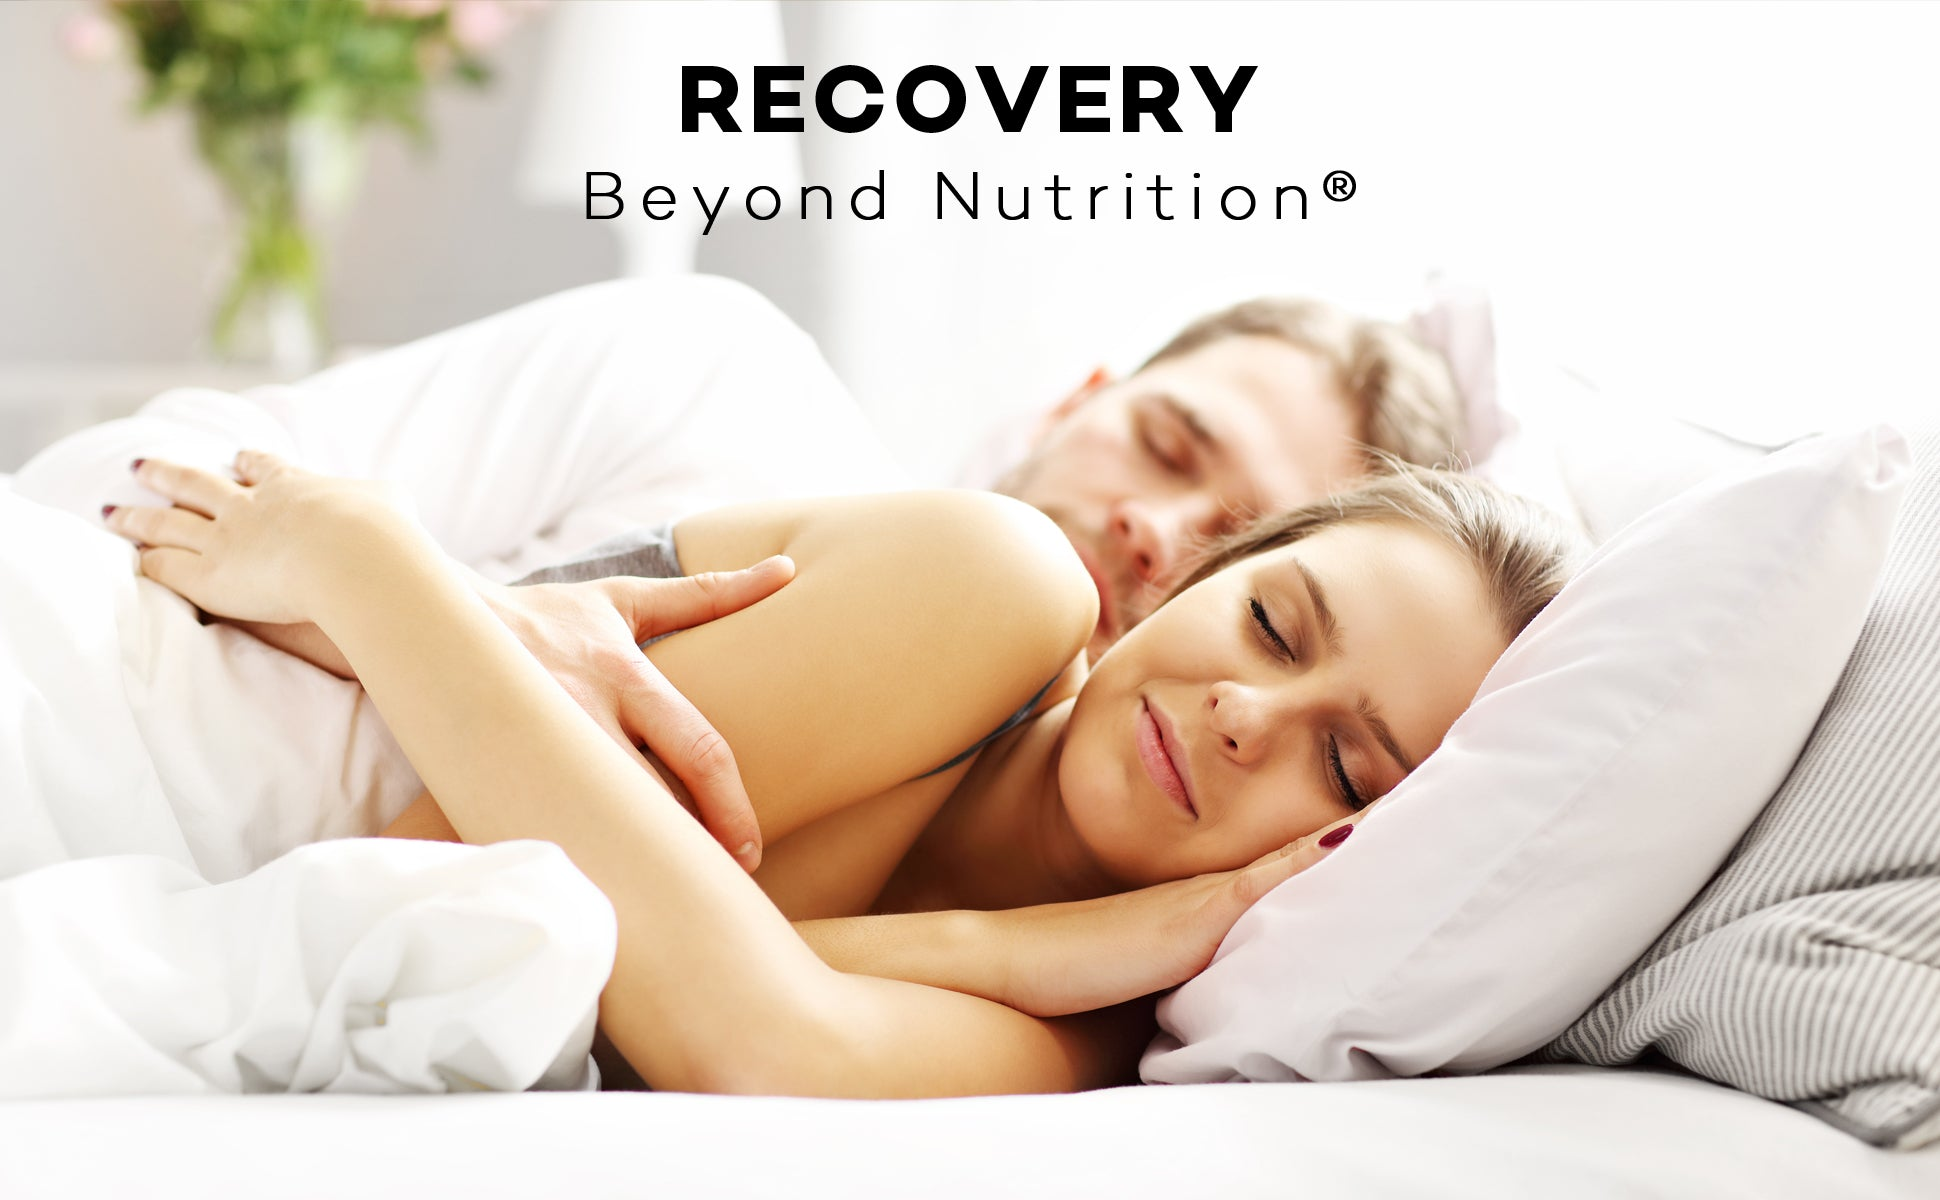 Beyond Recovery